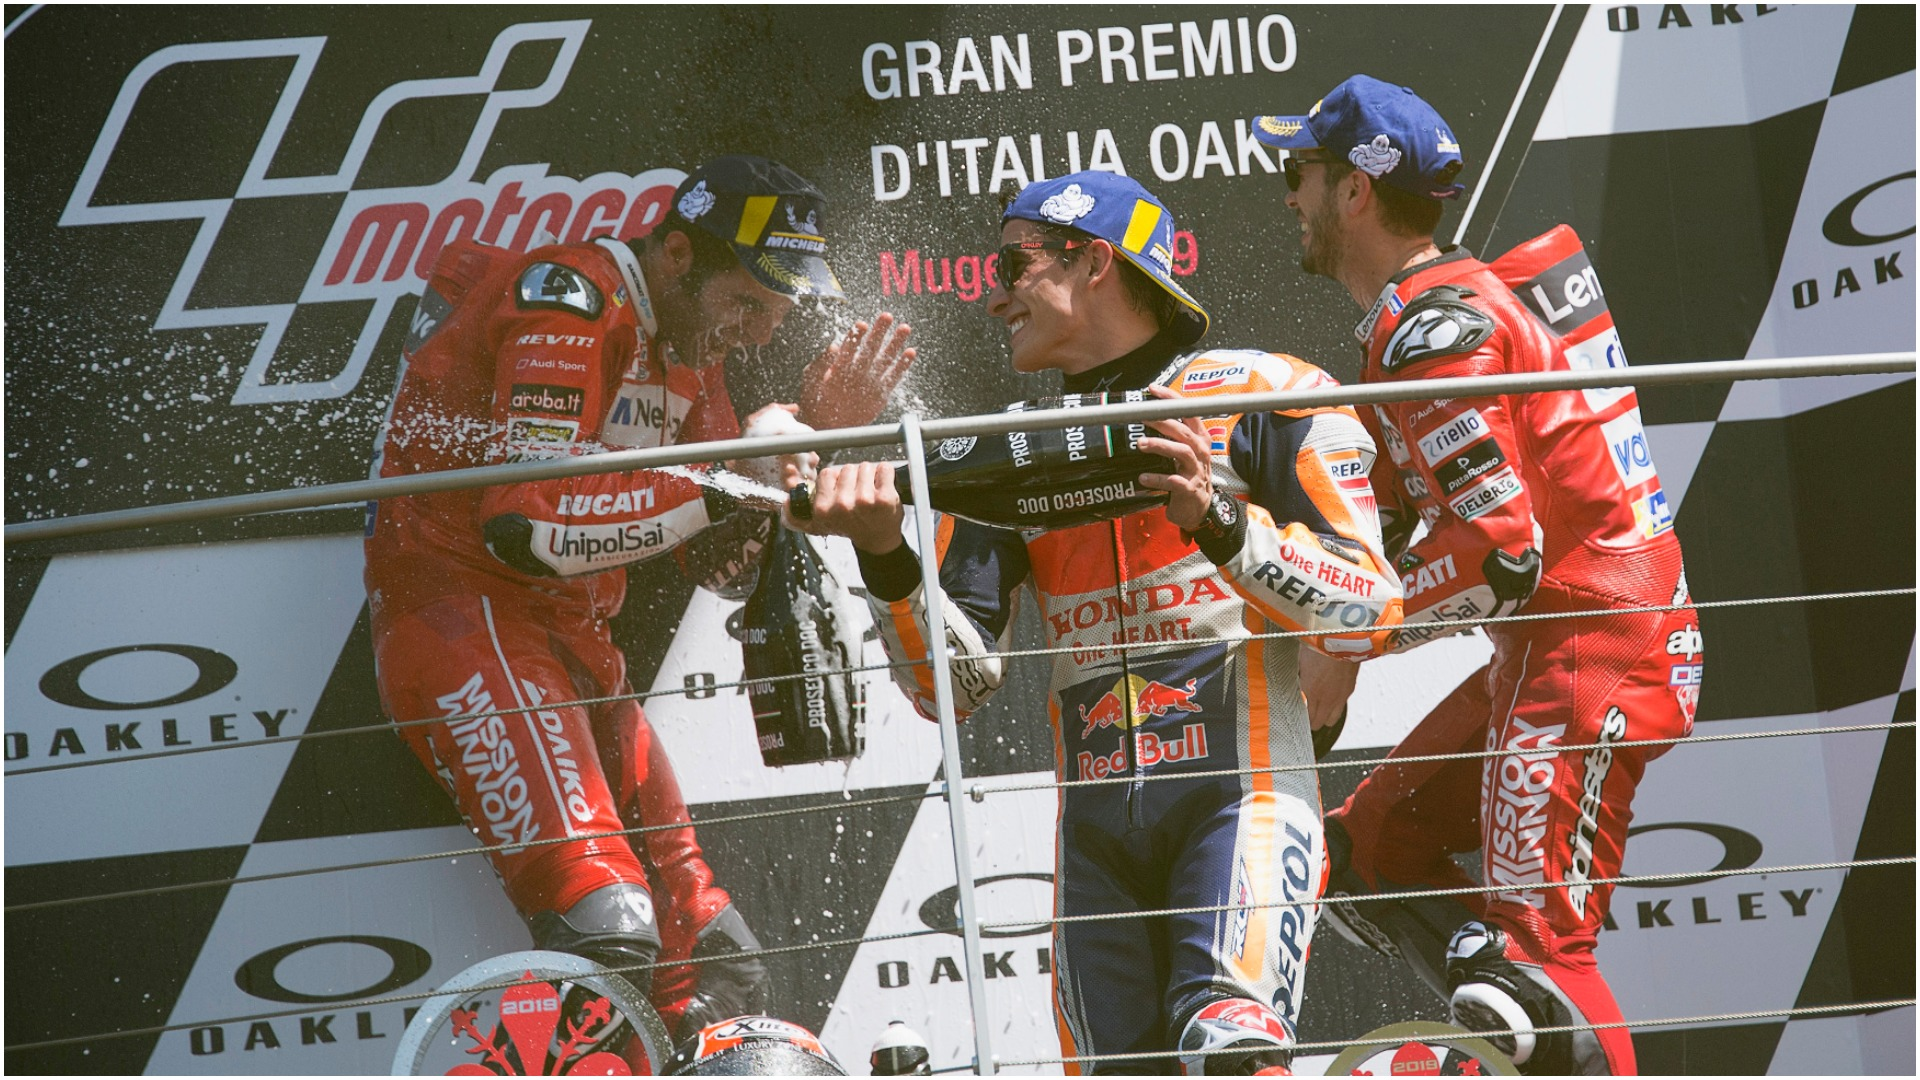 Danilo Petrucci finally tasted victory in MotoGP but quickly lauded Andrea Dovizioso, one of the men he beat at Mugello.